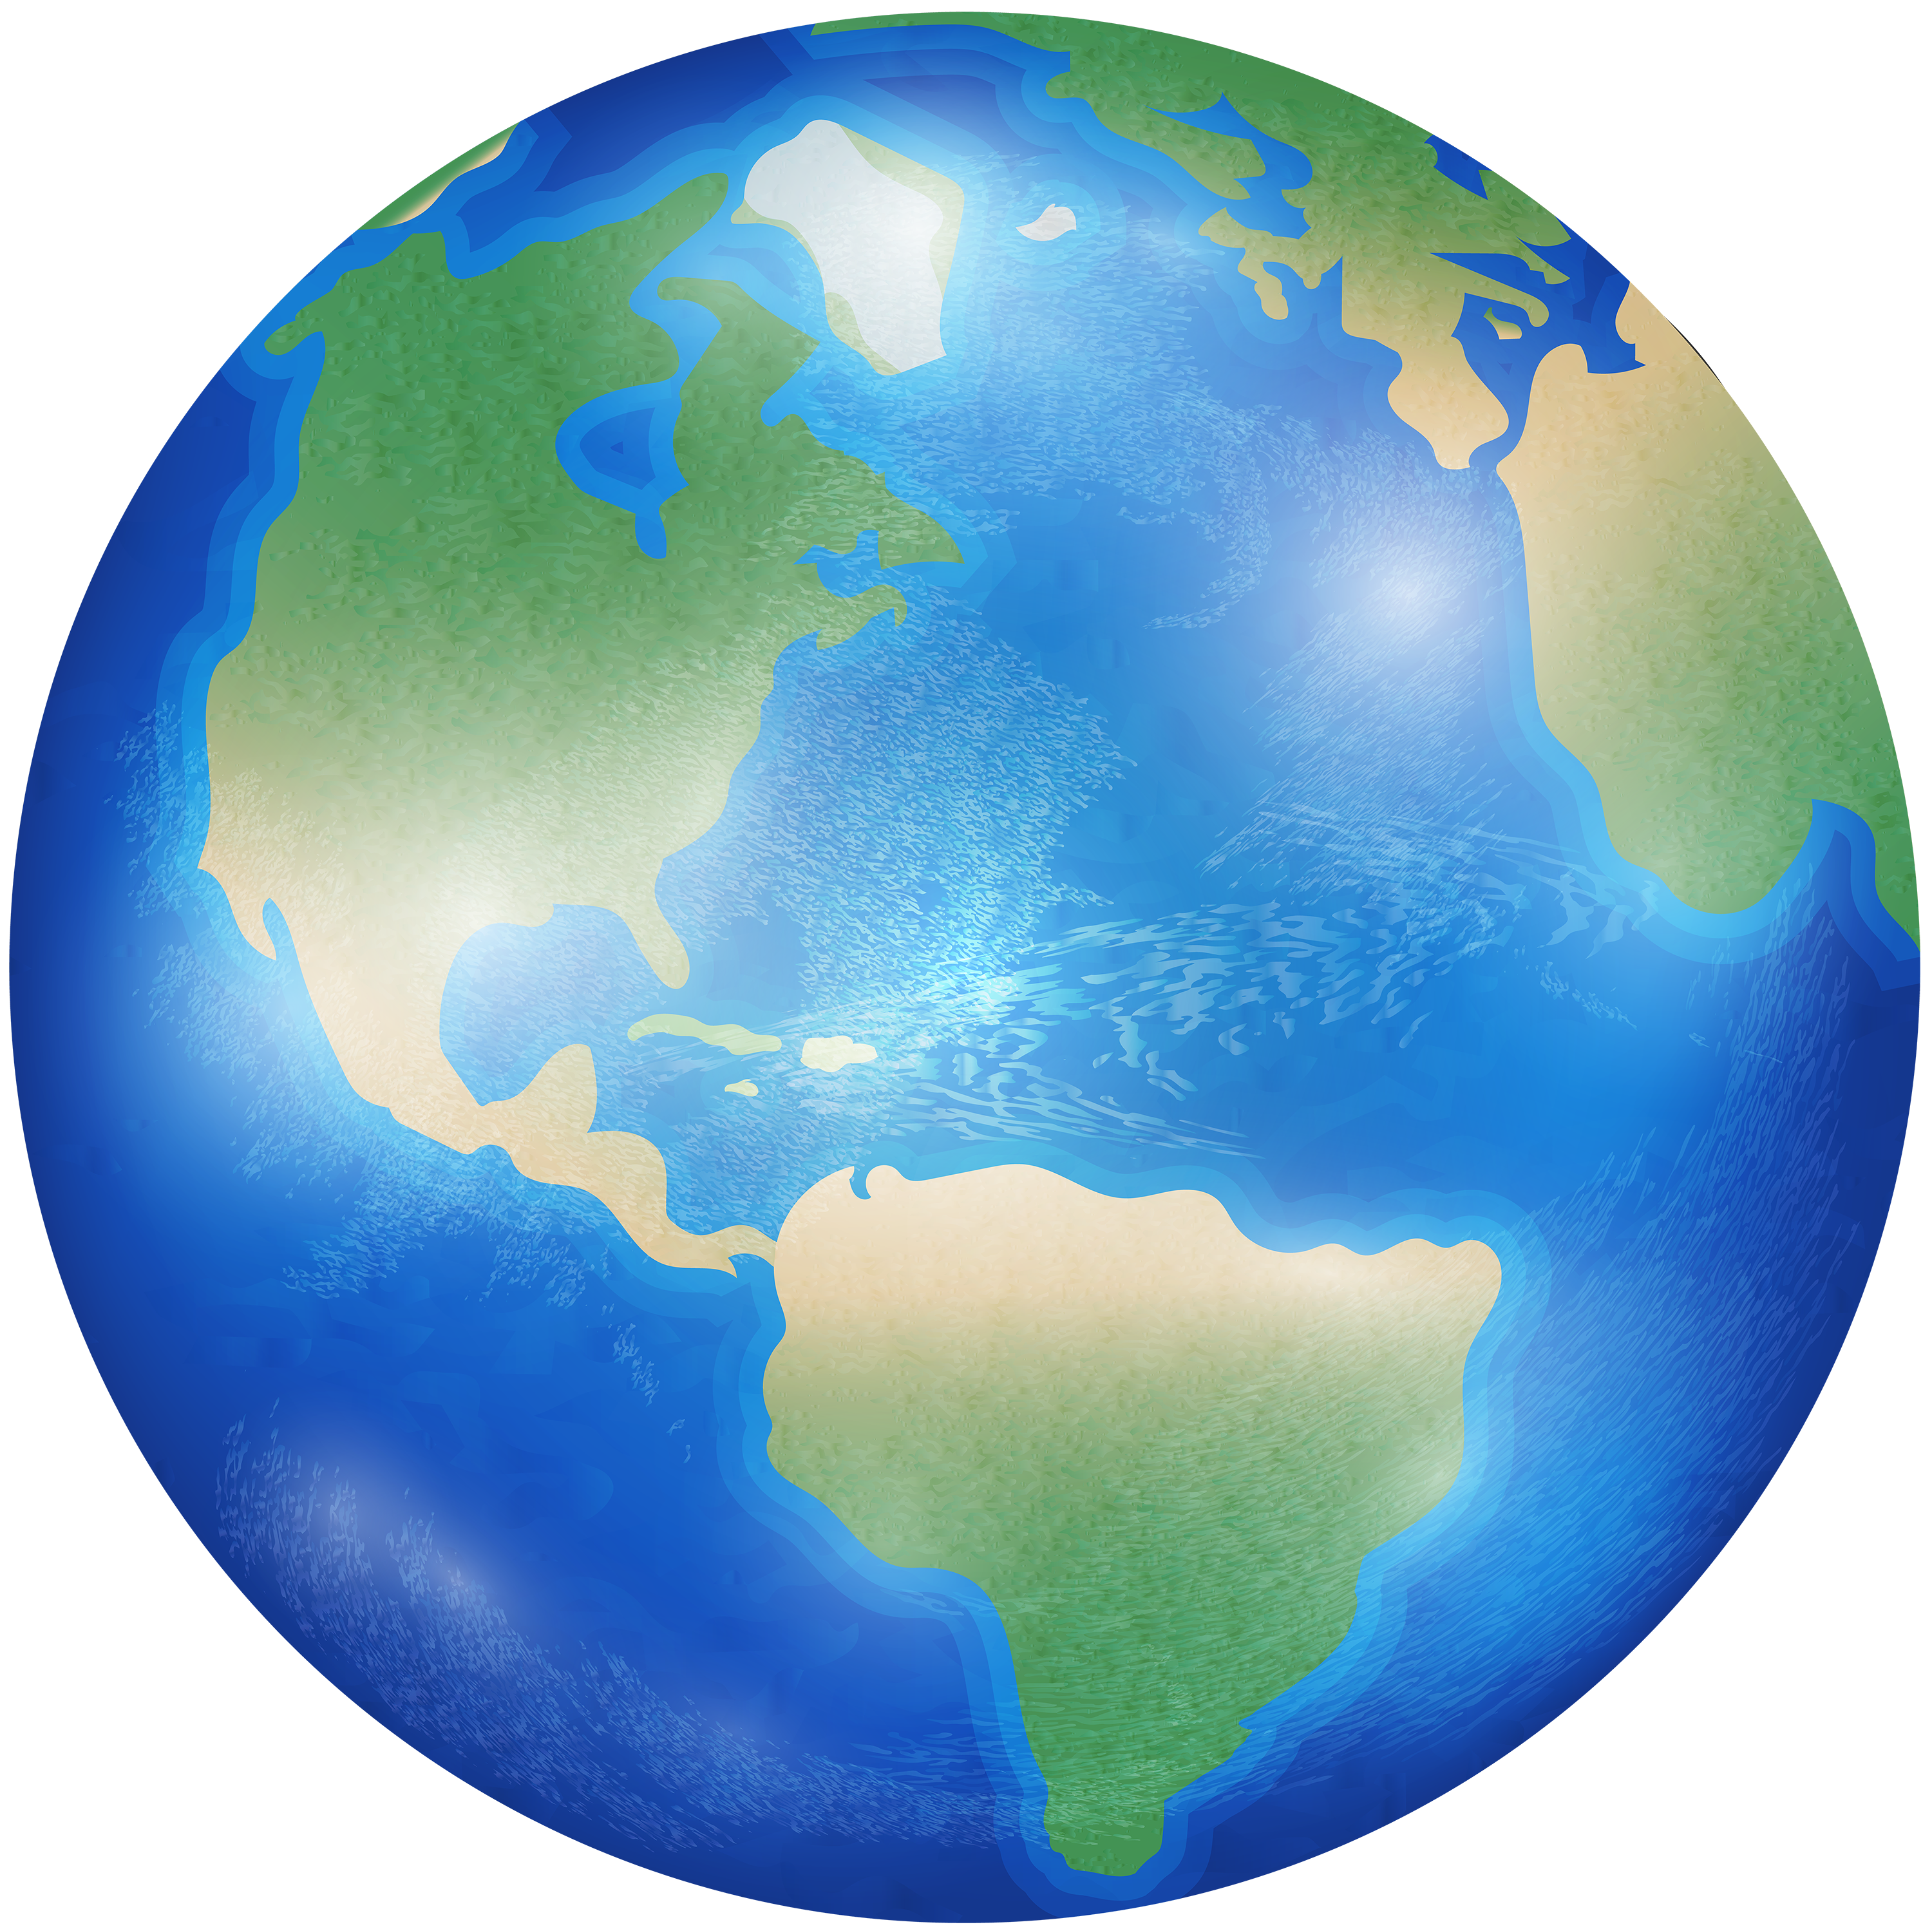 earth png clip art image best web clipart #11719